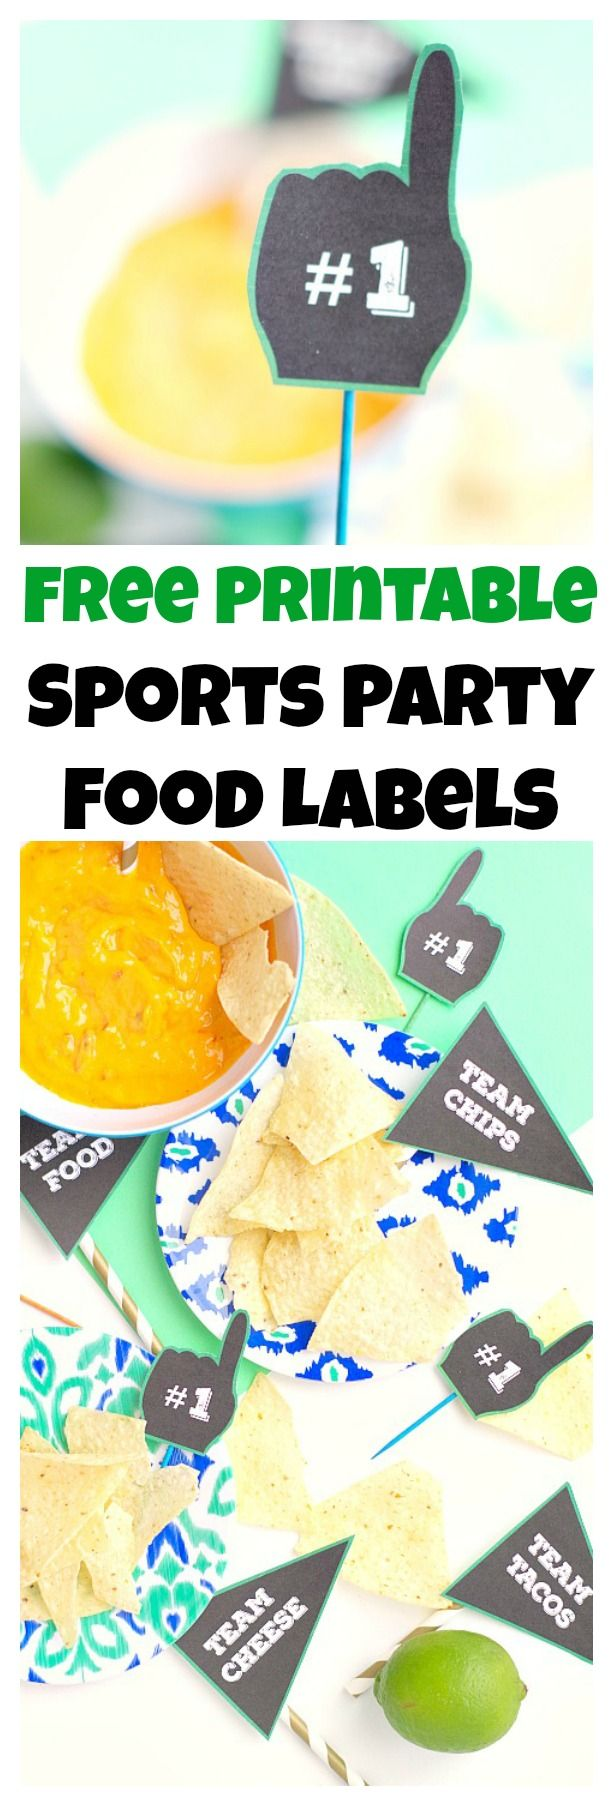 Free printable sports party food labels to show your food team spirit at the big game. These are perfect for the Super Bowl or sports birthday parties.